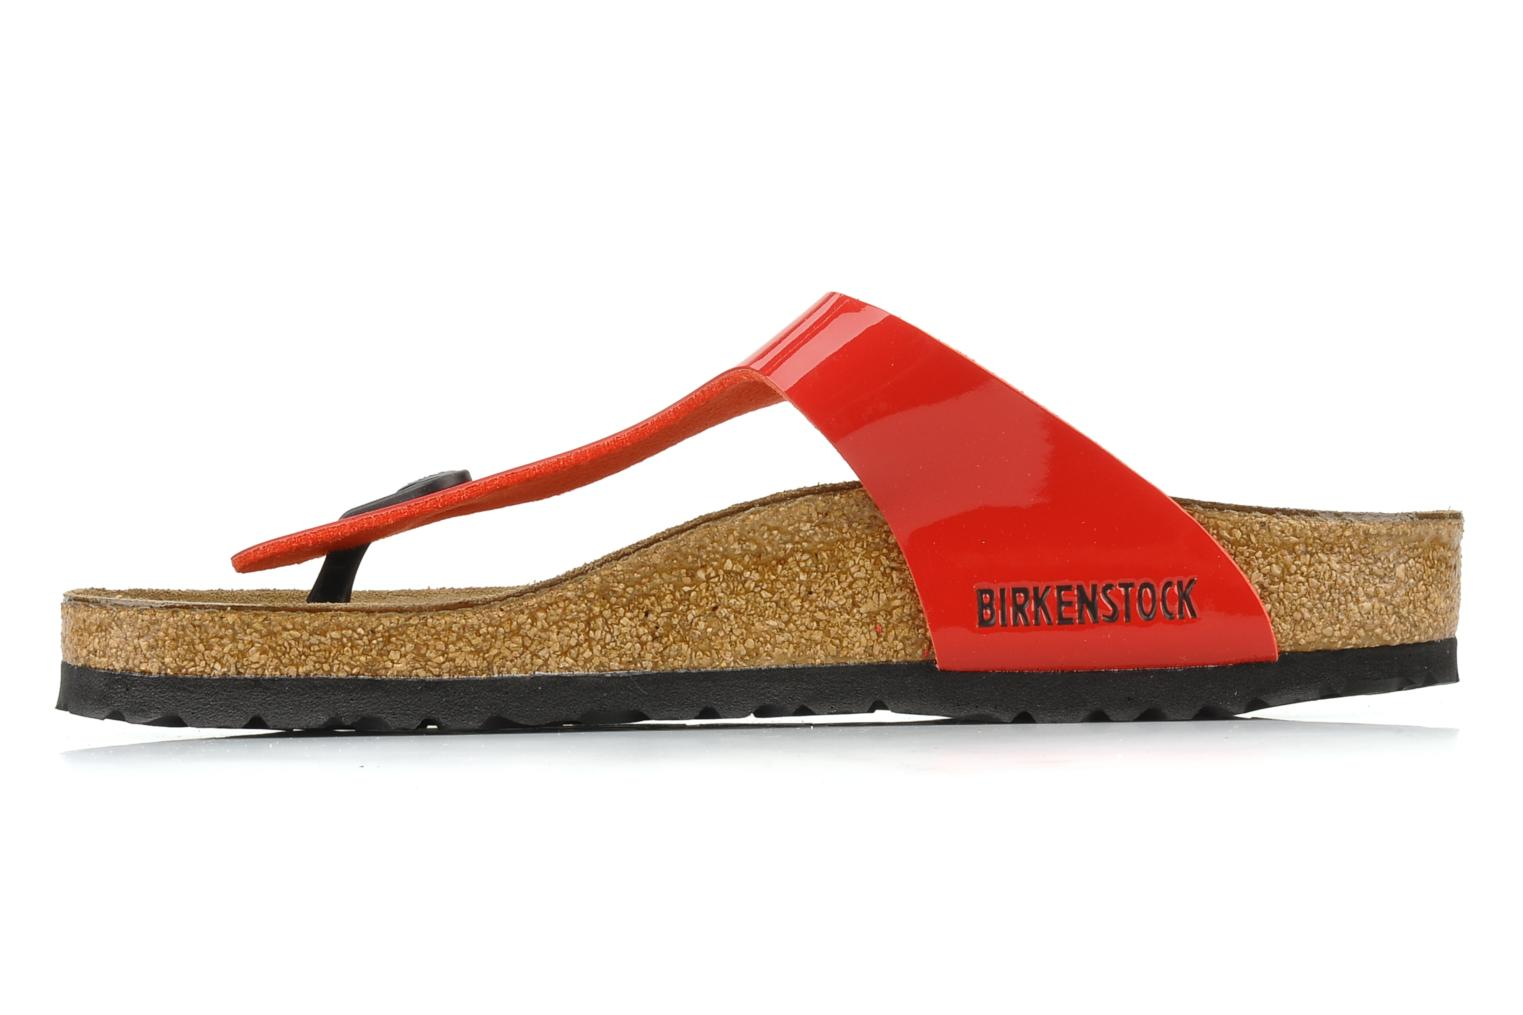 BIRKENSTOCK GIZEH - INFRADITO DONNA ANATOMICO - Latini Sport b3aa0af9d99